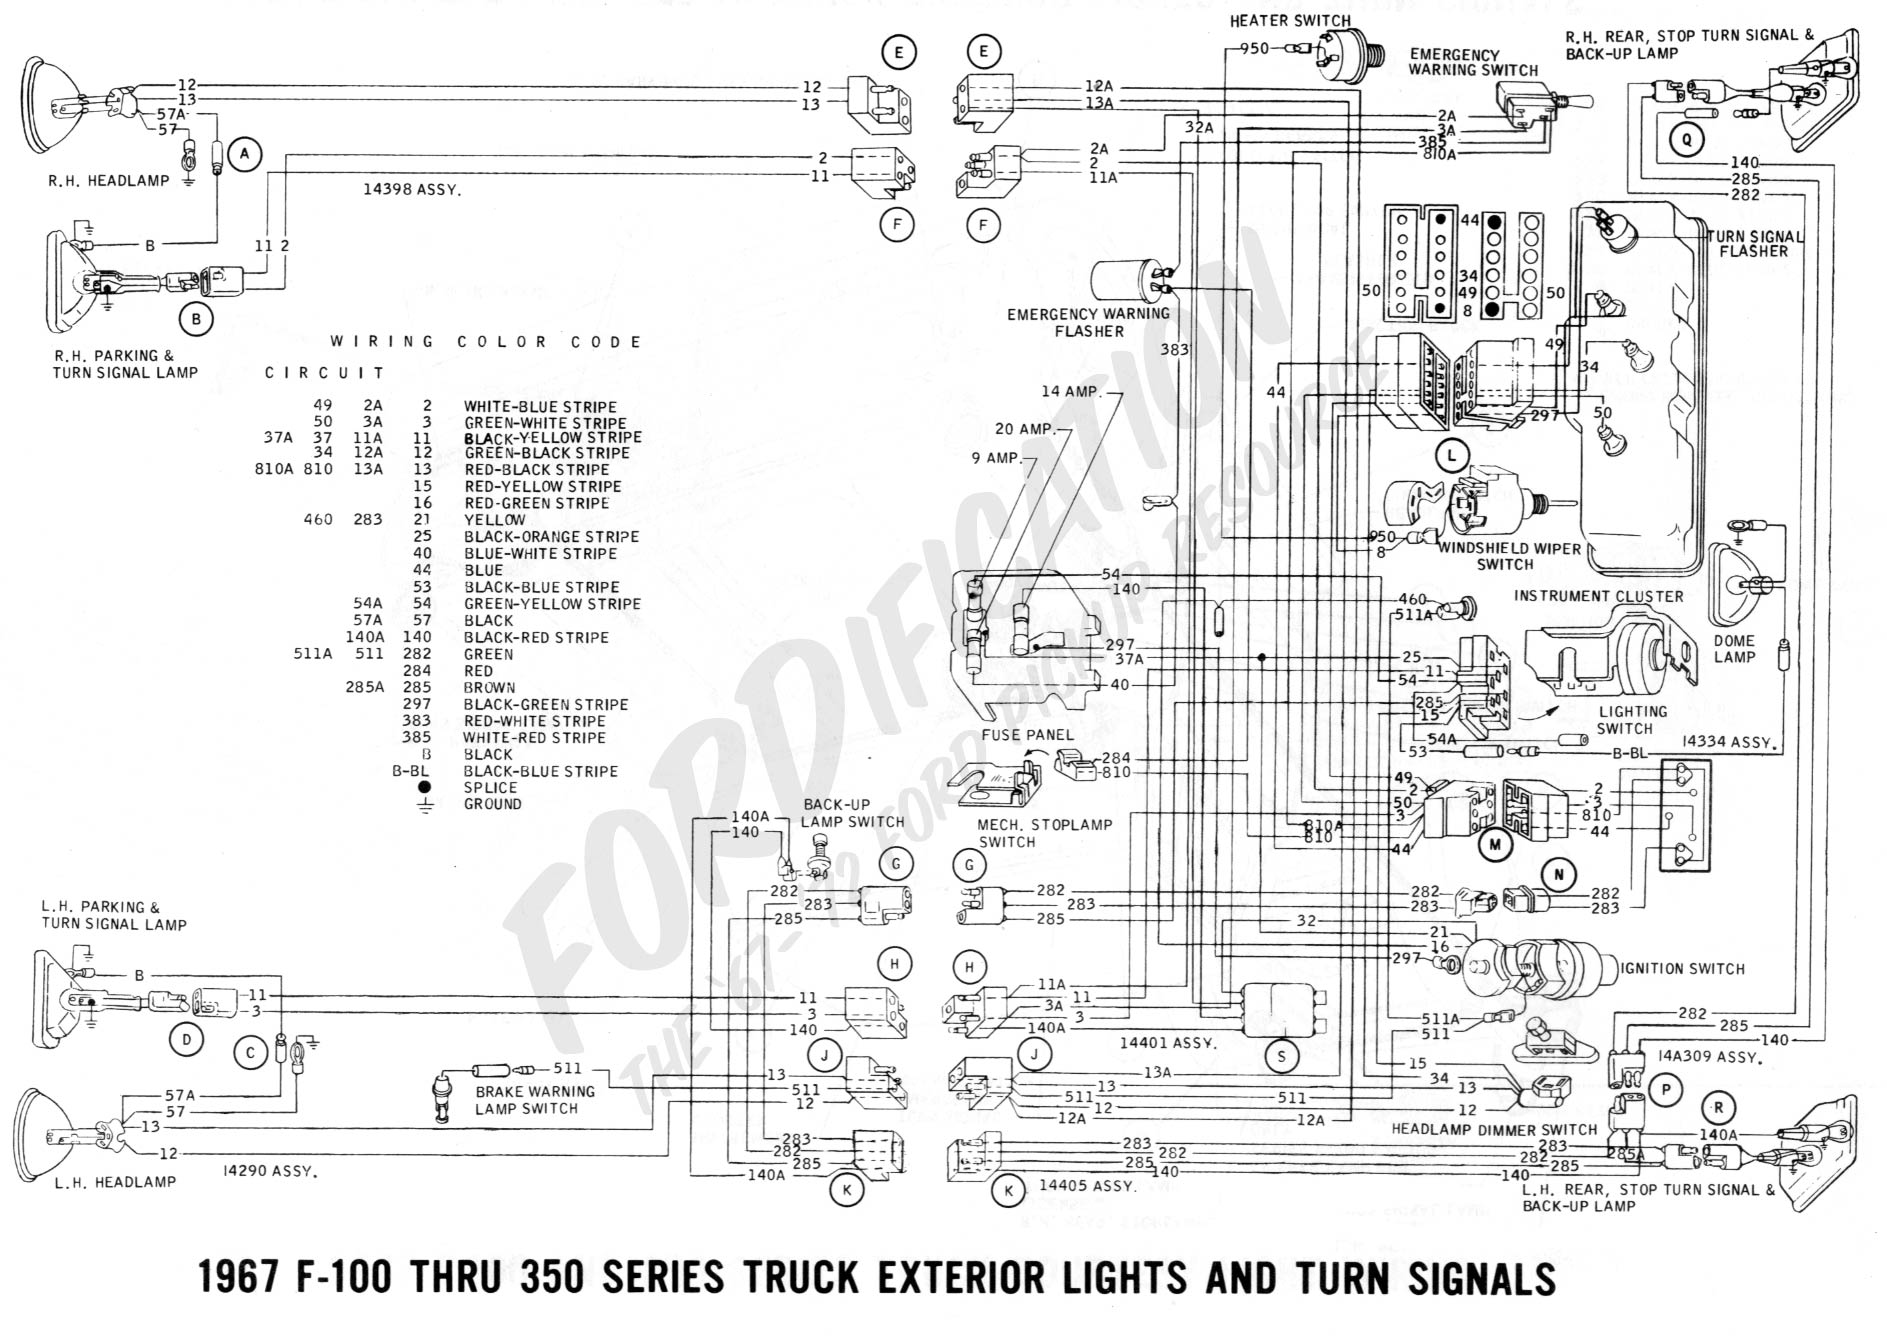 1986 Mustang Fuse Box Diagram Archive Of Automotive Wiring 1983 66 Turn Signal Data Schema Rh Site De Joueurs Com Gt